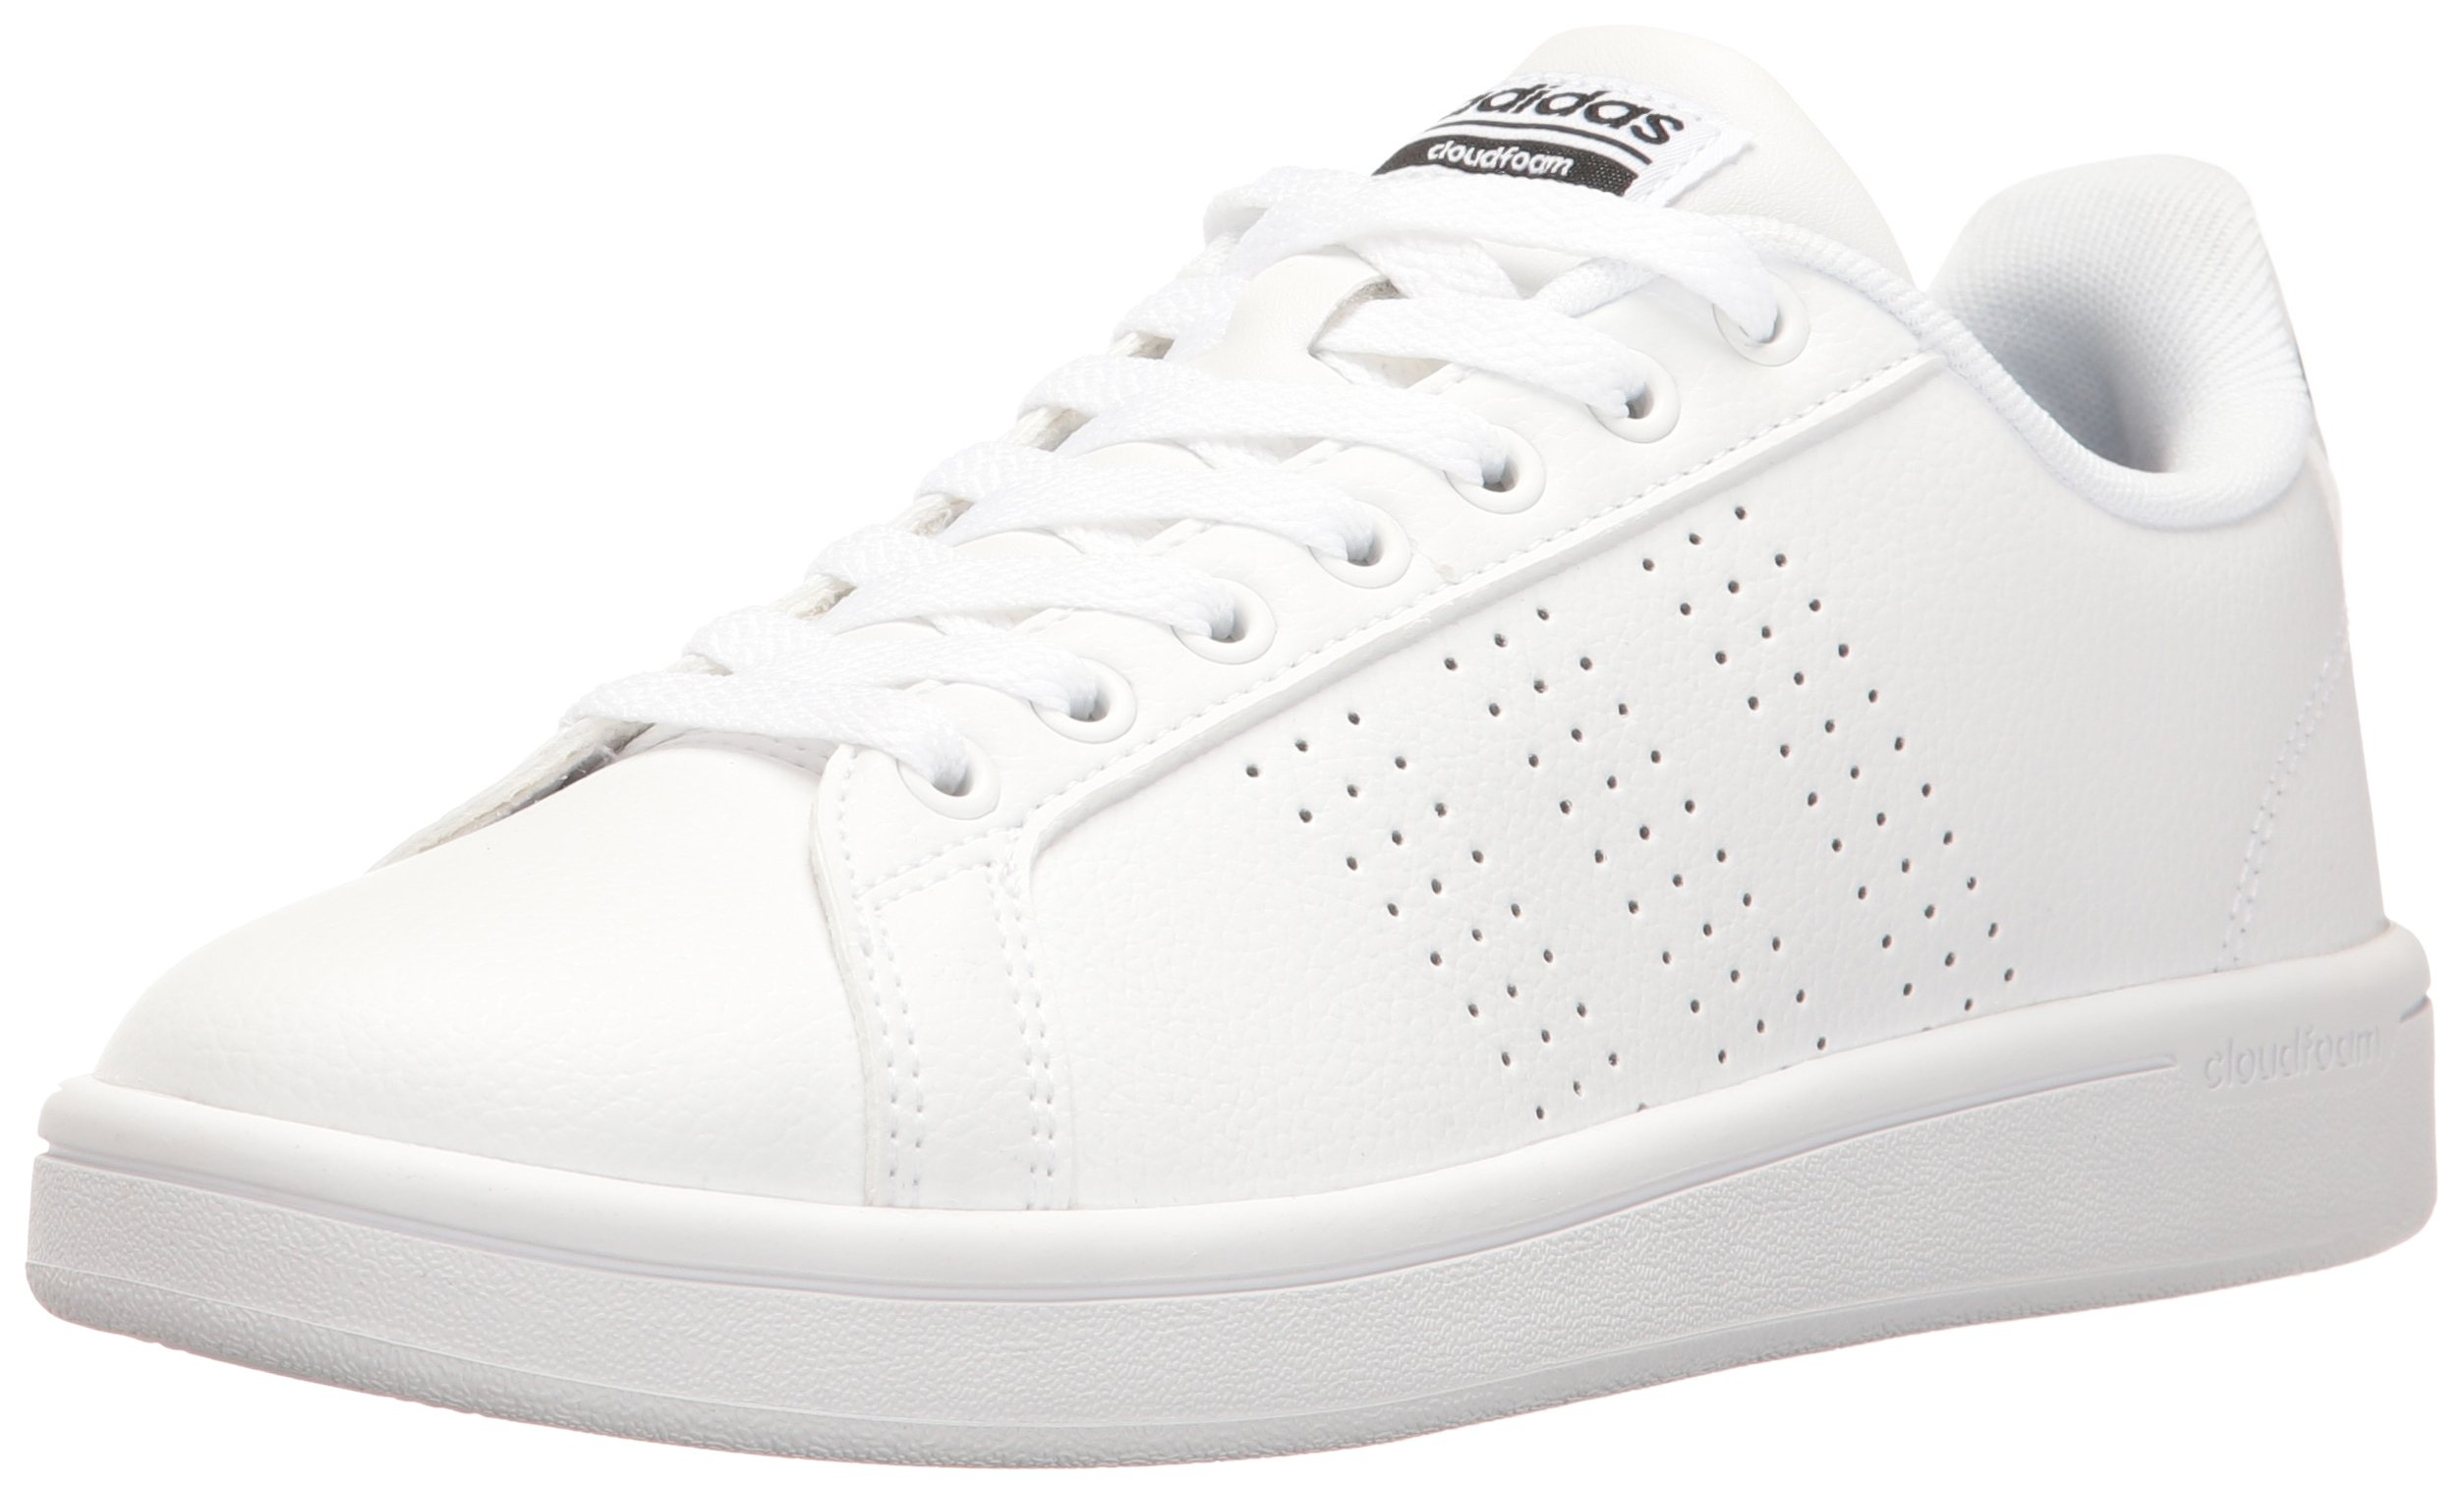 adidas Women's Shoes Cloudfoam Advantage Clean Sneakers white/White/Black, (8 M US)